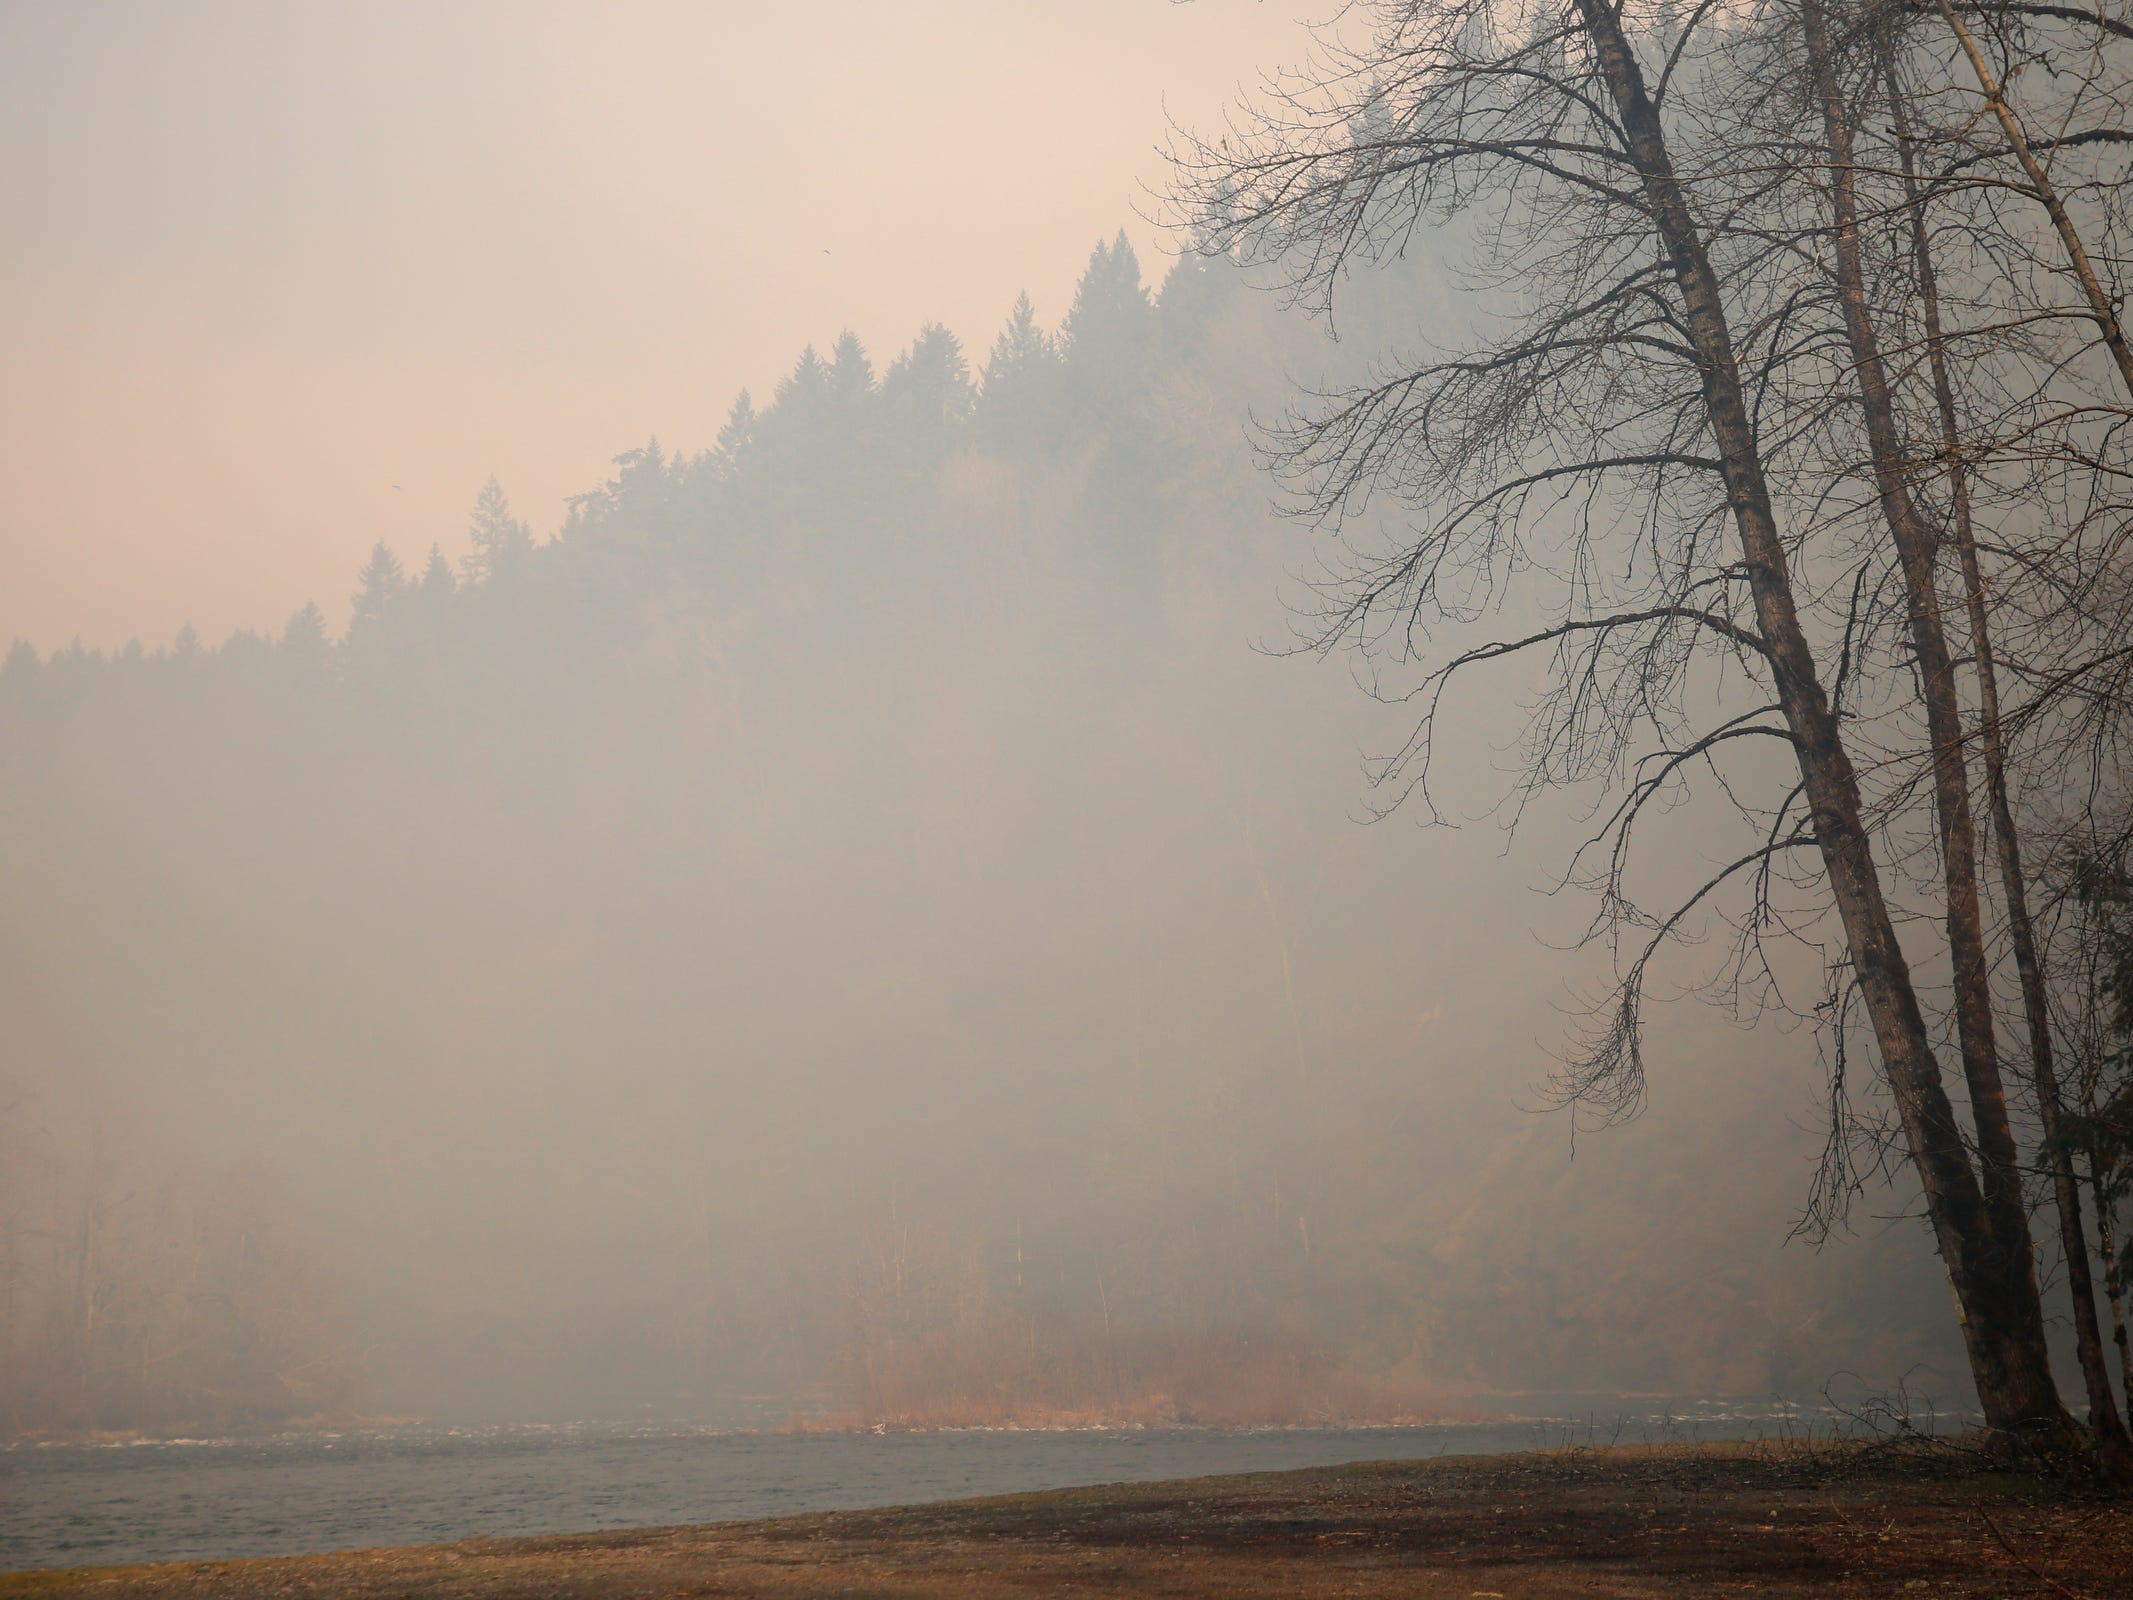 A wildfire that began Tuesday continues to burn in the North Santiam State Recreation Area in near Lyons on March 20, 2019. The fire has forced evacuations in Marion and Linn counties.